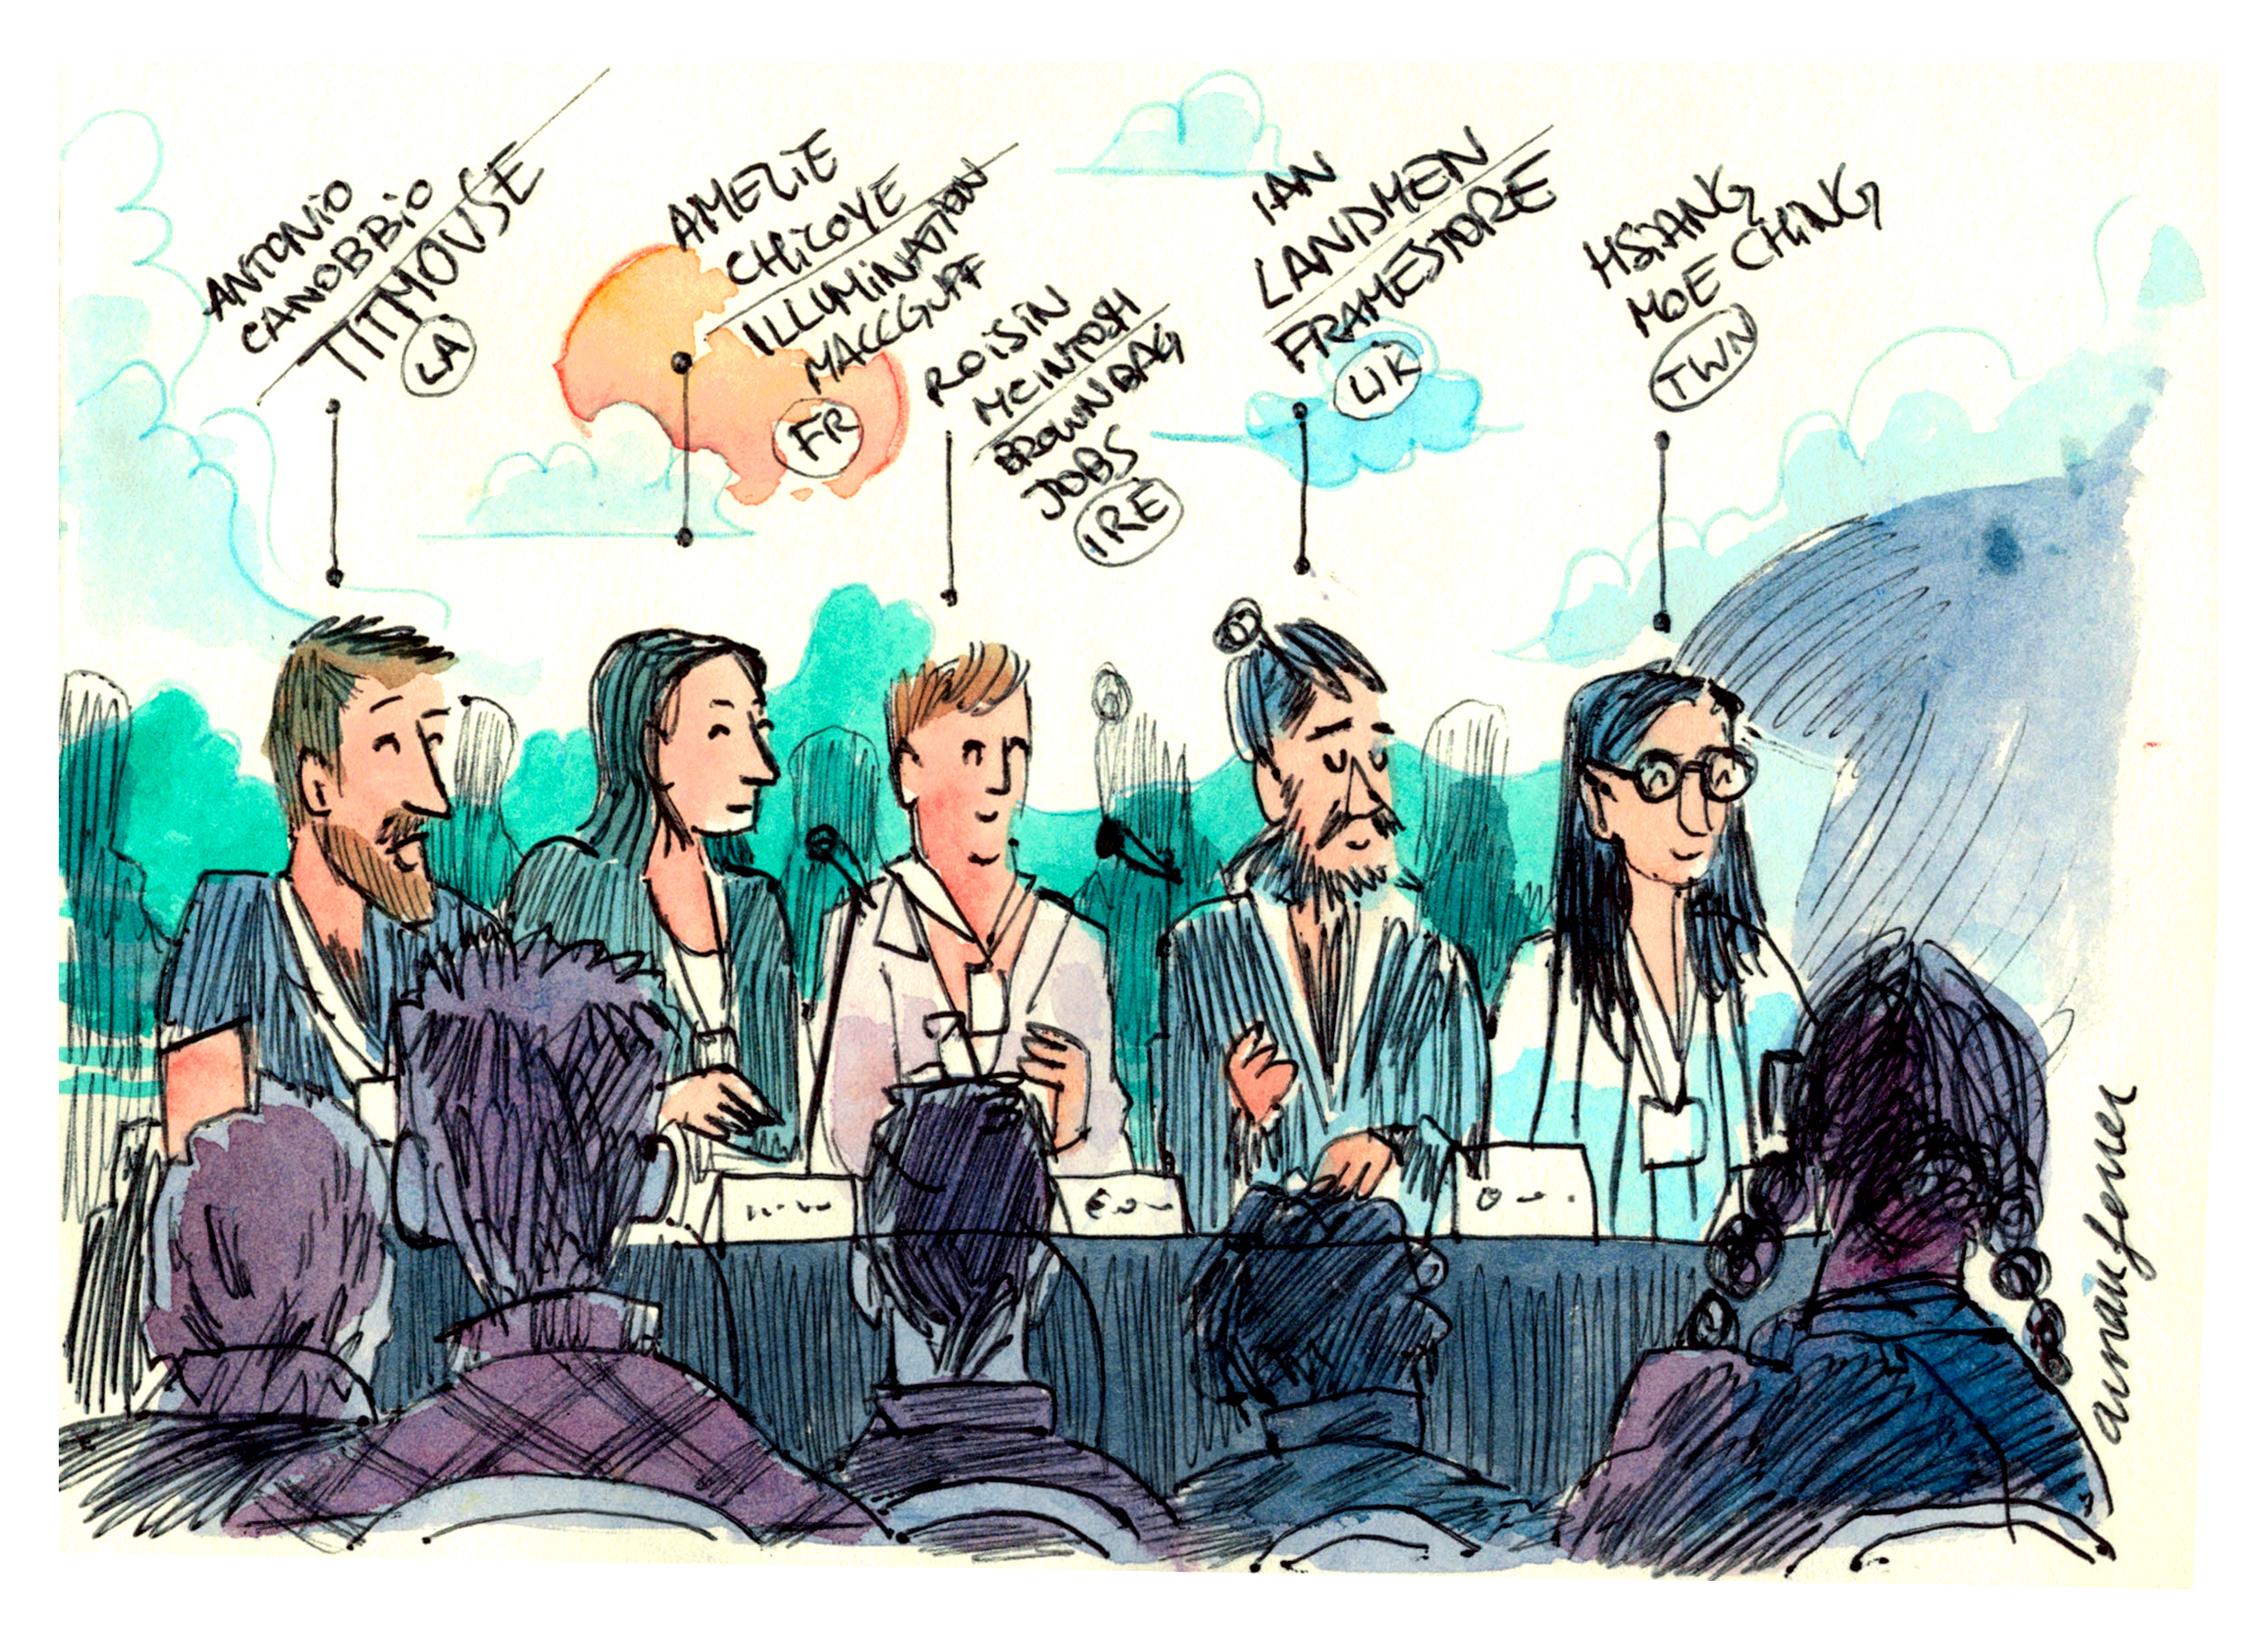 A color illustration of a panel discussion.